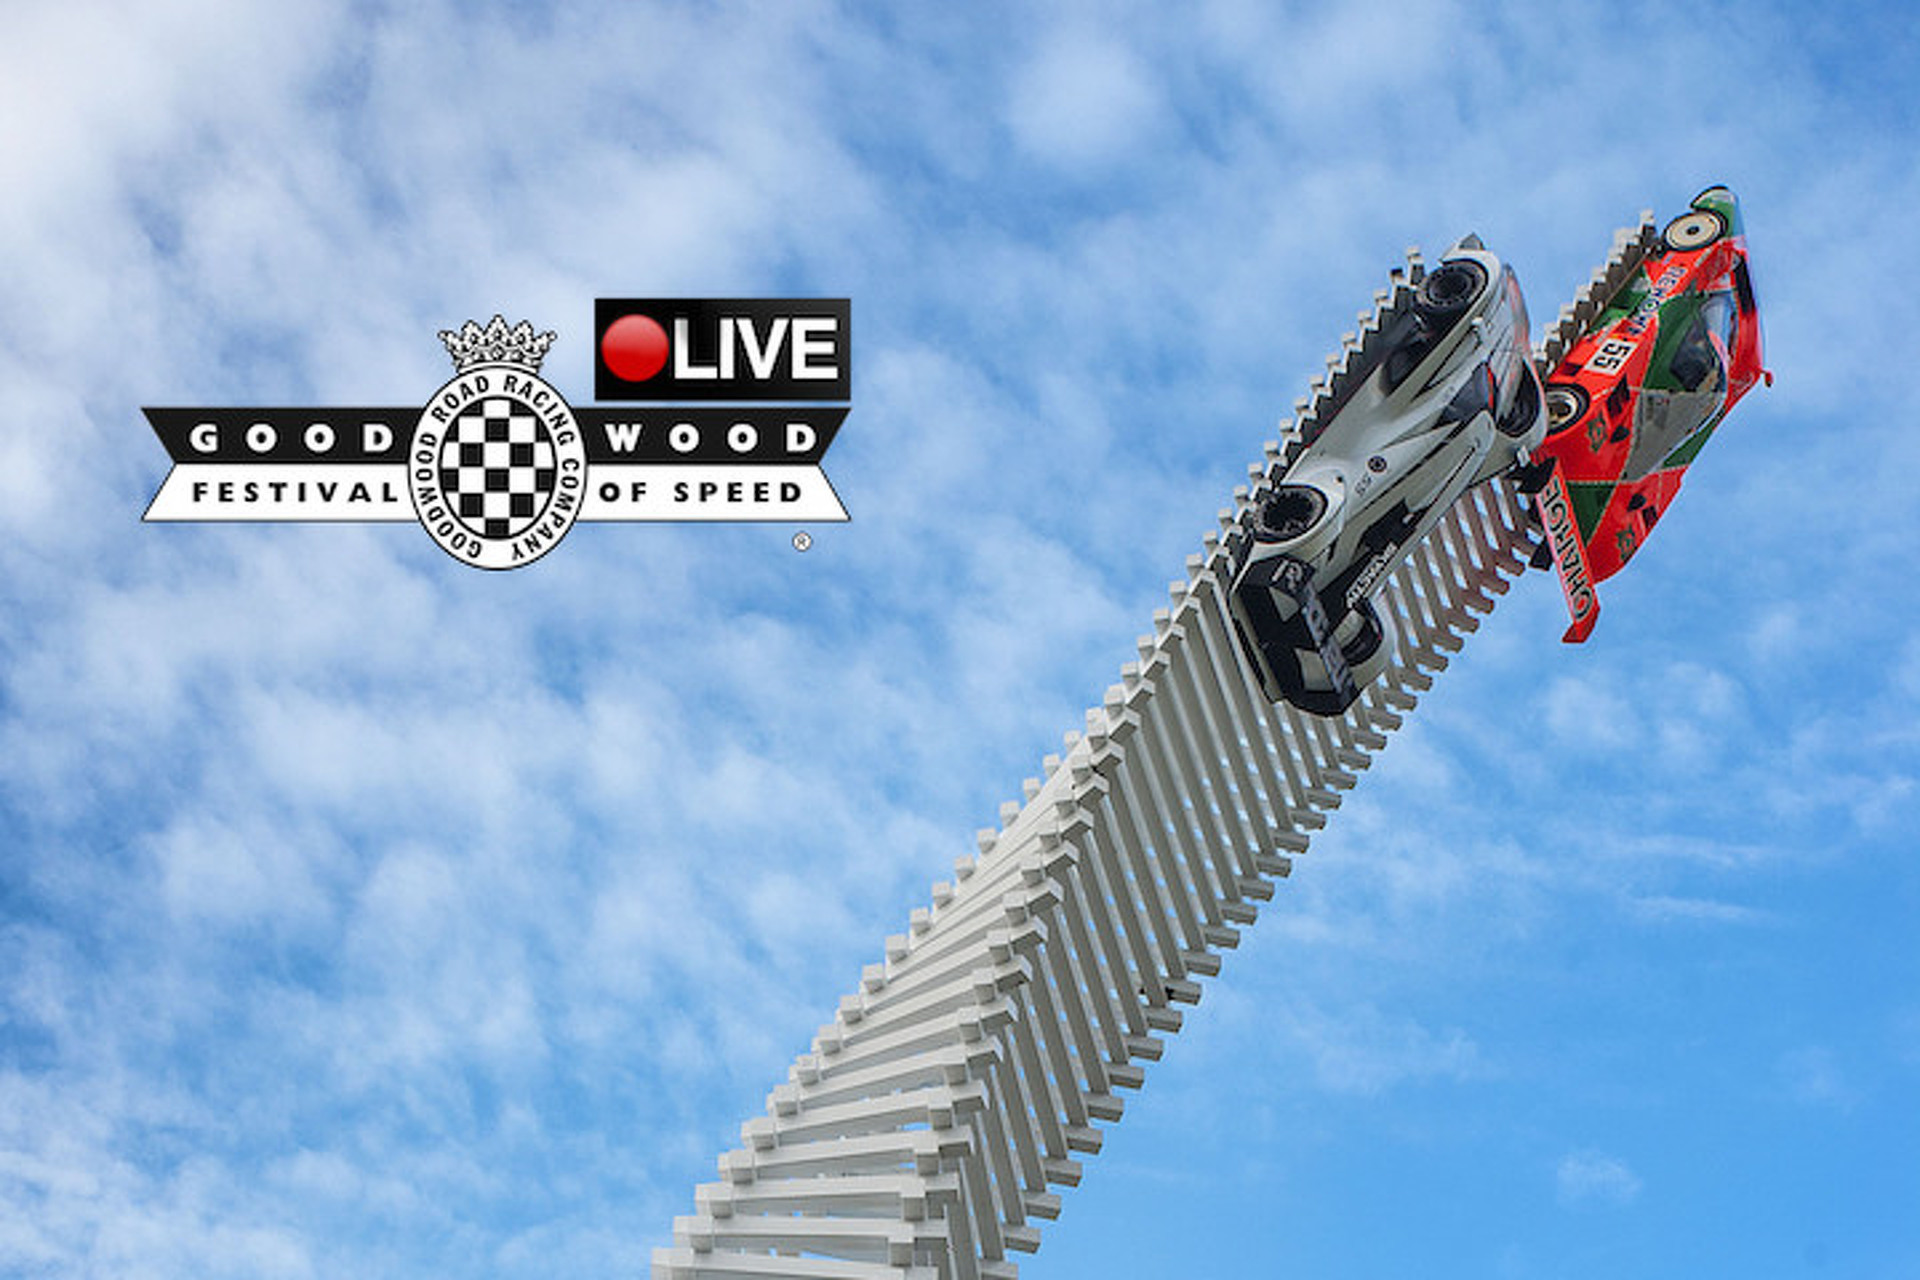 Watch the 2015 Goodwood Festival of Speed Live